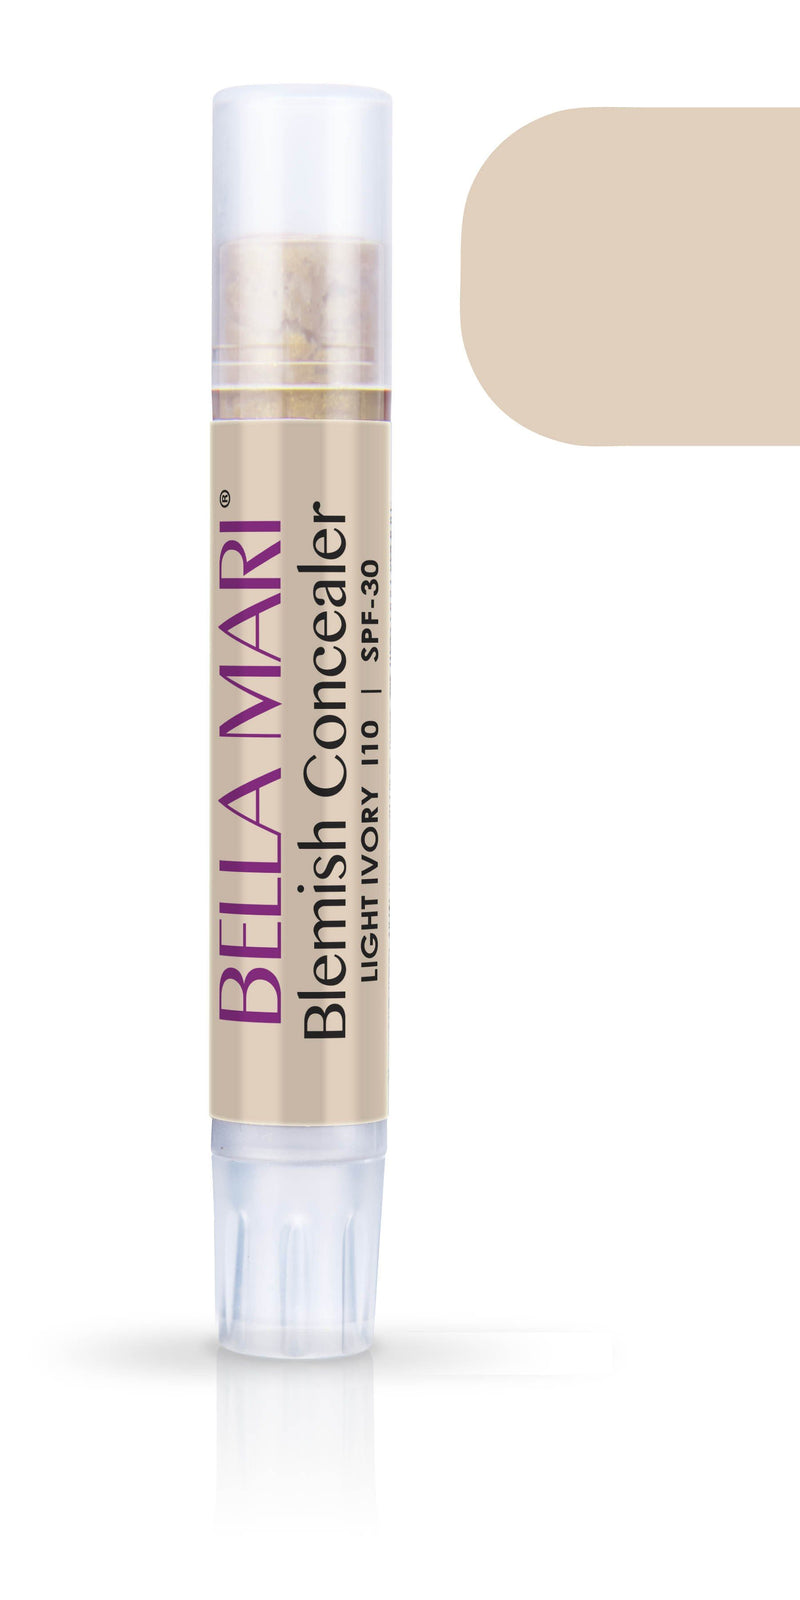 Bella Mari Natural Blemish Concealer Stick; 0.1floz - Bella Mari Natural Blemish Concealer Stick; 0.1floz - Light Ivory